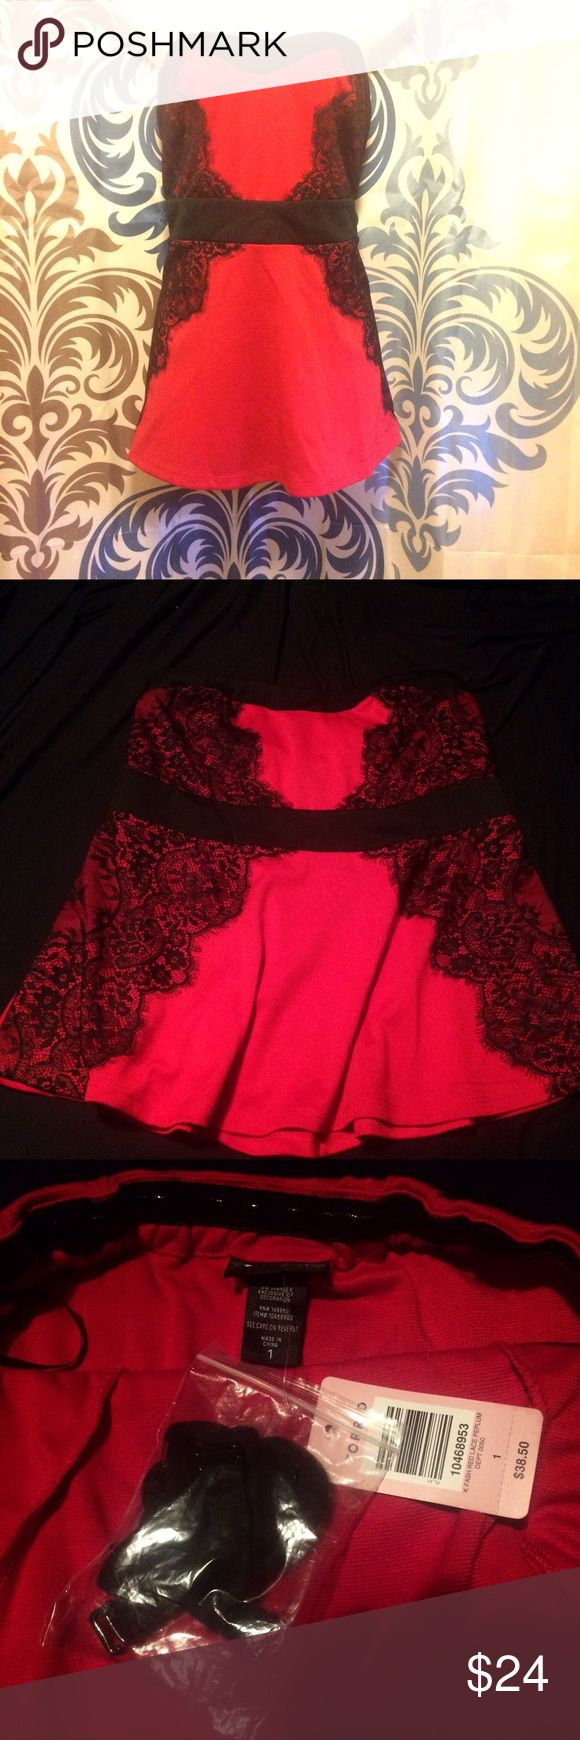 NWT Torrid Size 1 Tank top Very pretty Red with black lace Embellishments. Can be strapless tube top or add the straps and wear as a tank top. Straps are still attached. NWT Torrid size 1 which is 14/16 torrid Tops Tank Tops